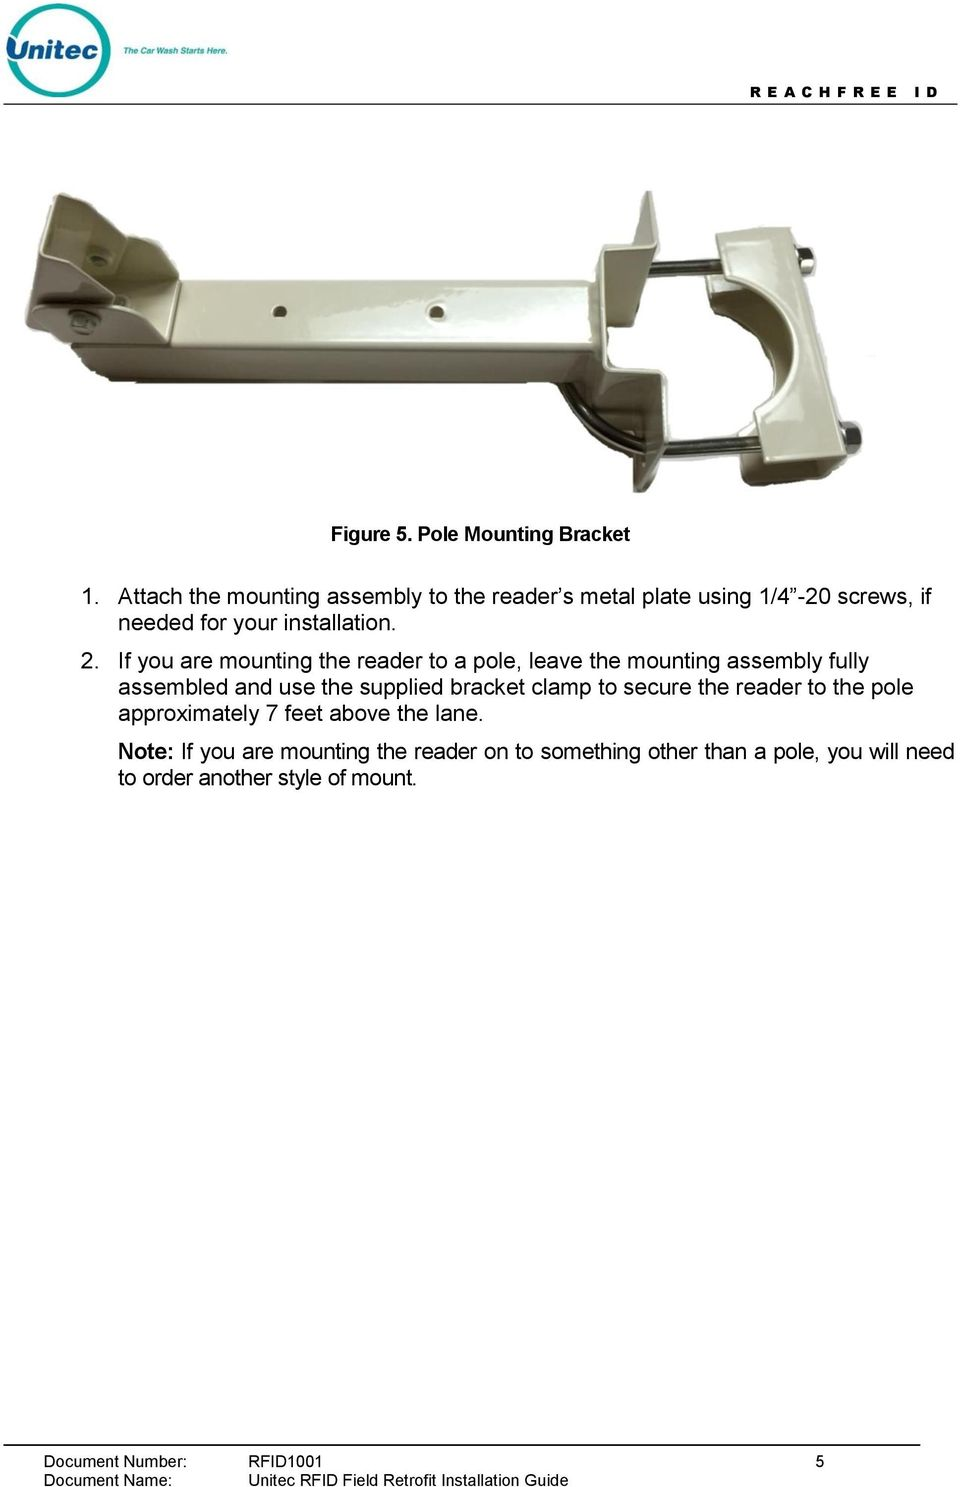 If you are mounting the reader to a pole, leave the mounting assembly fully assembled and use the supplied bracket clamp